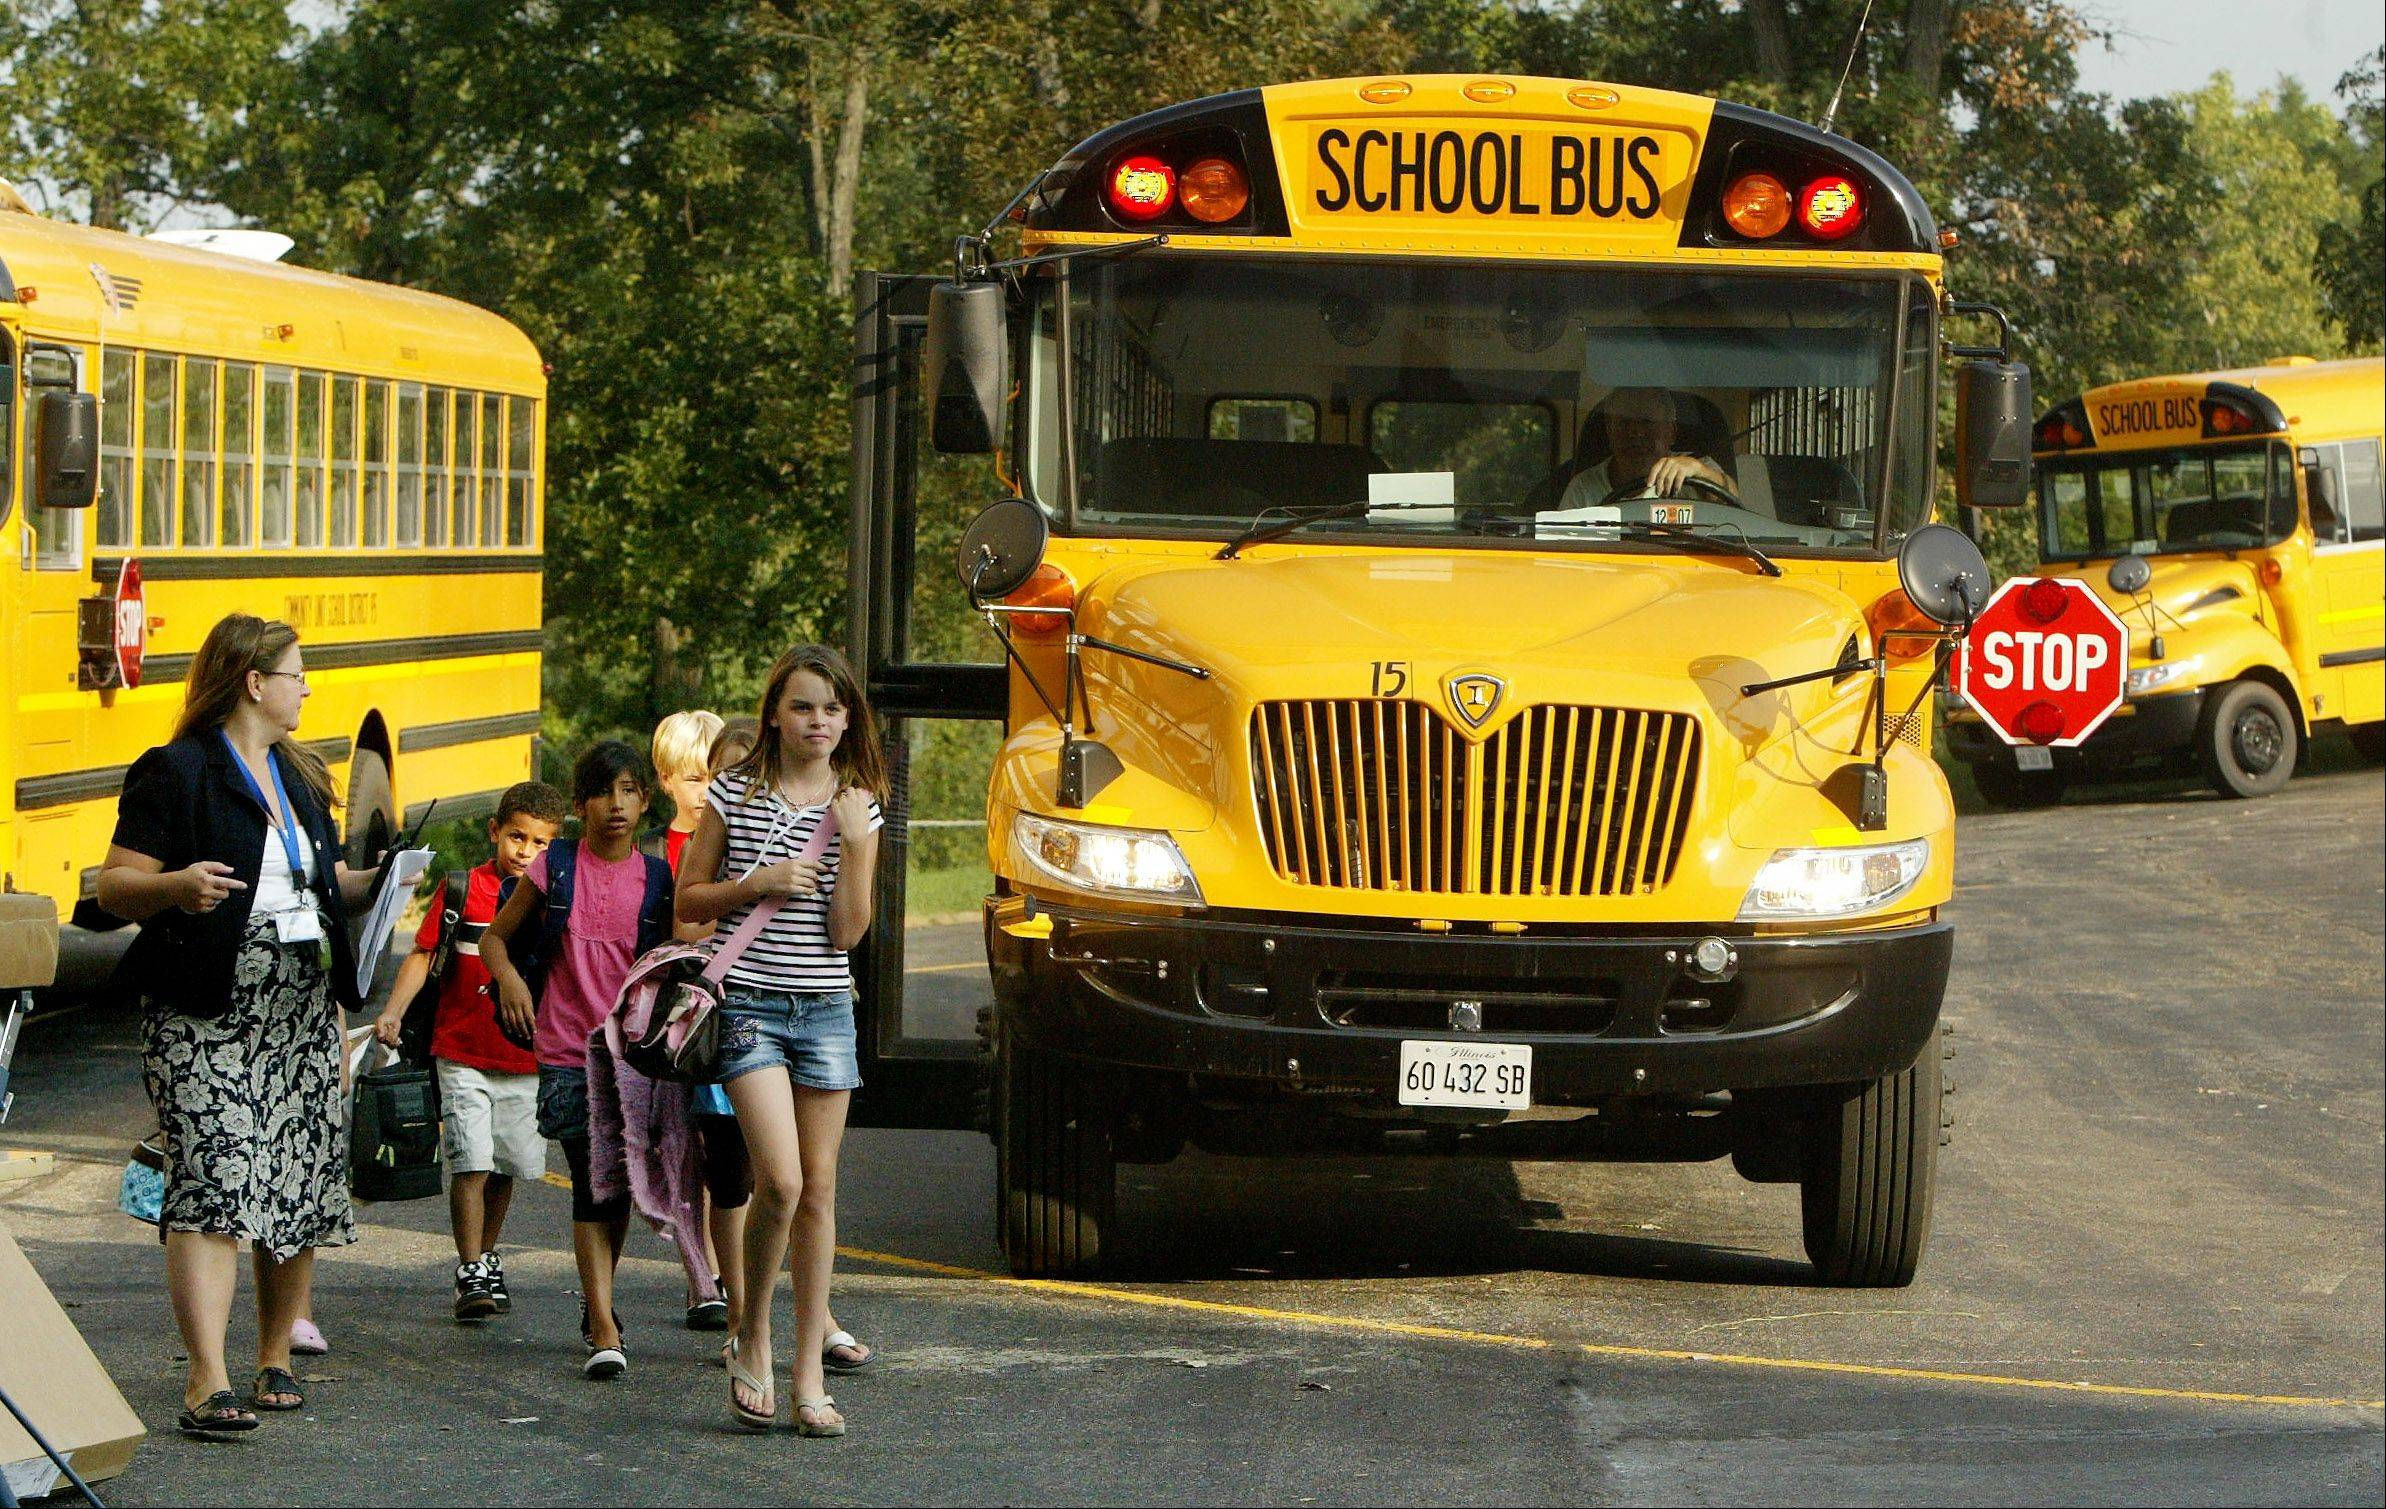 Survey shows drivers ignore stopped school buses